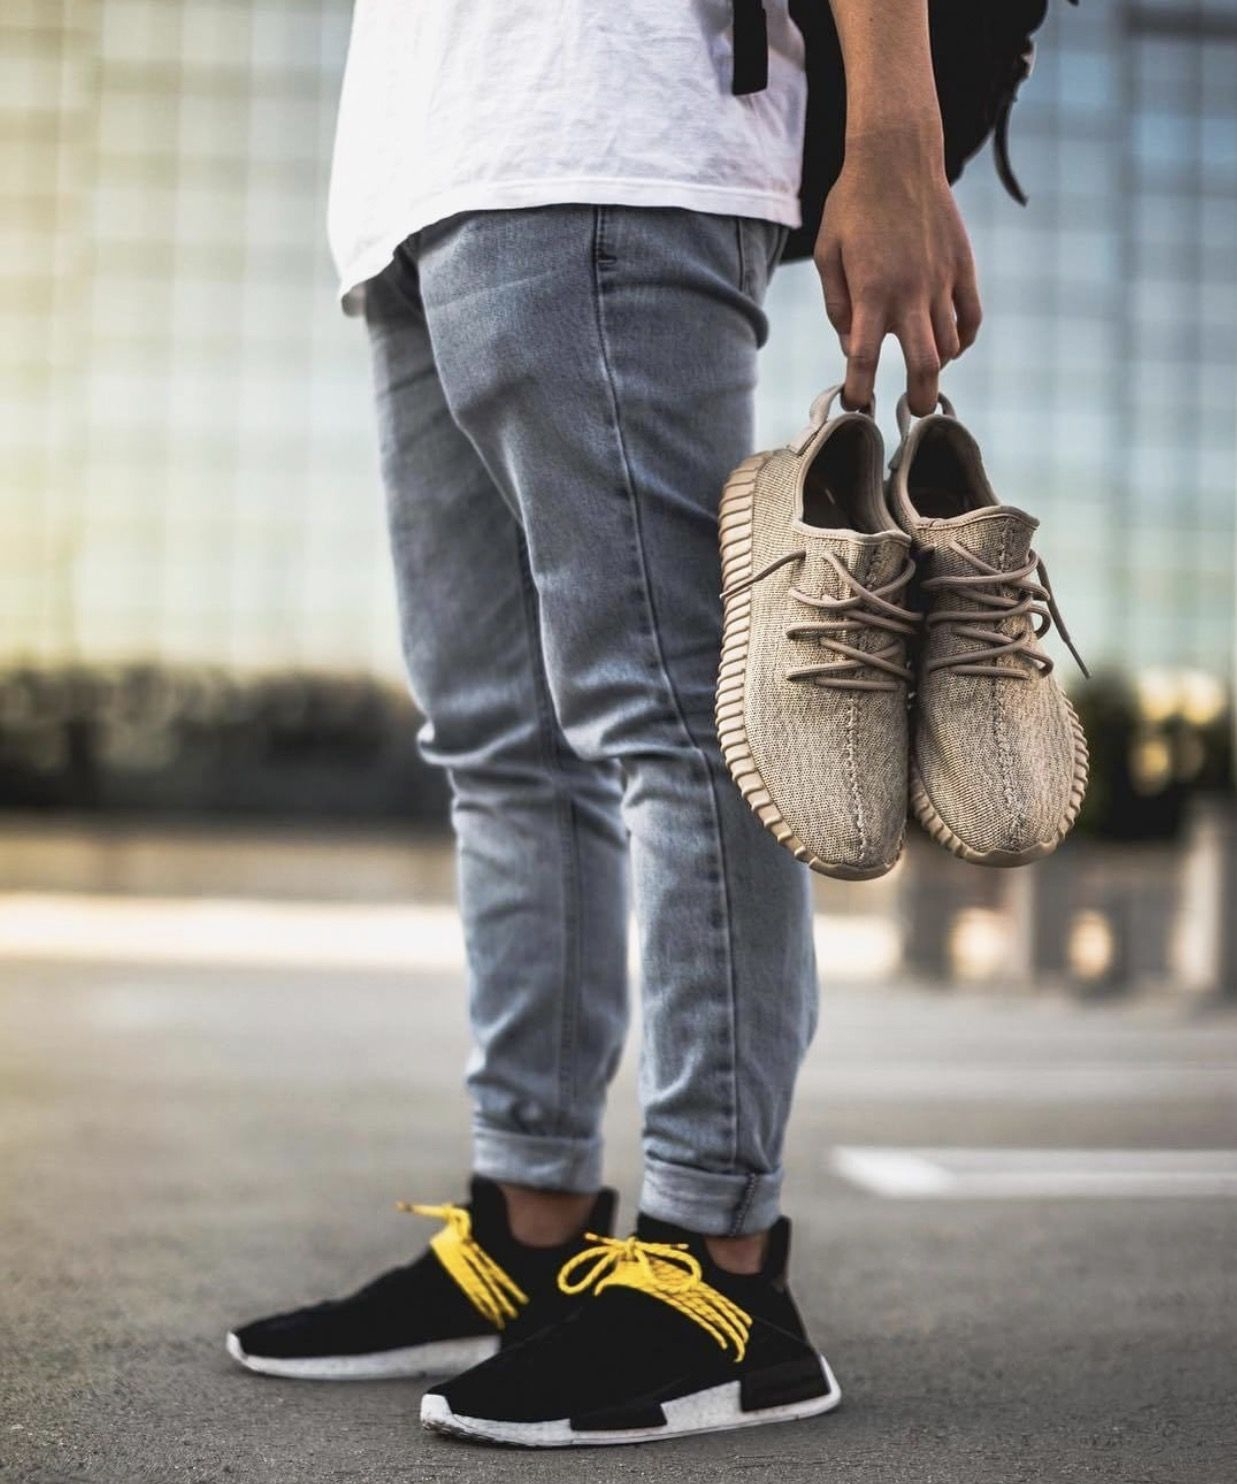 dd3b1d4695a2 On feet   adidas x Pharrell Williams NMD Human Race Blk. In hand  adidas  Yeezy Boost 350 V1